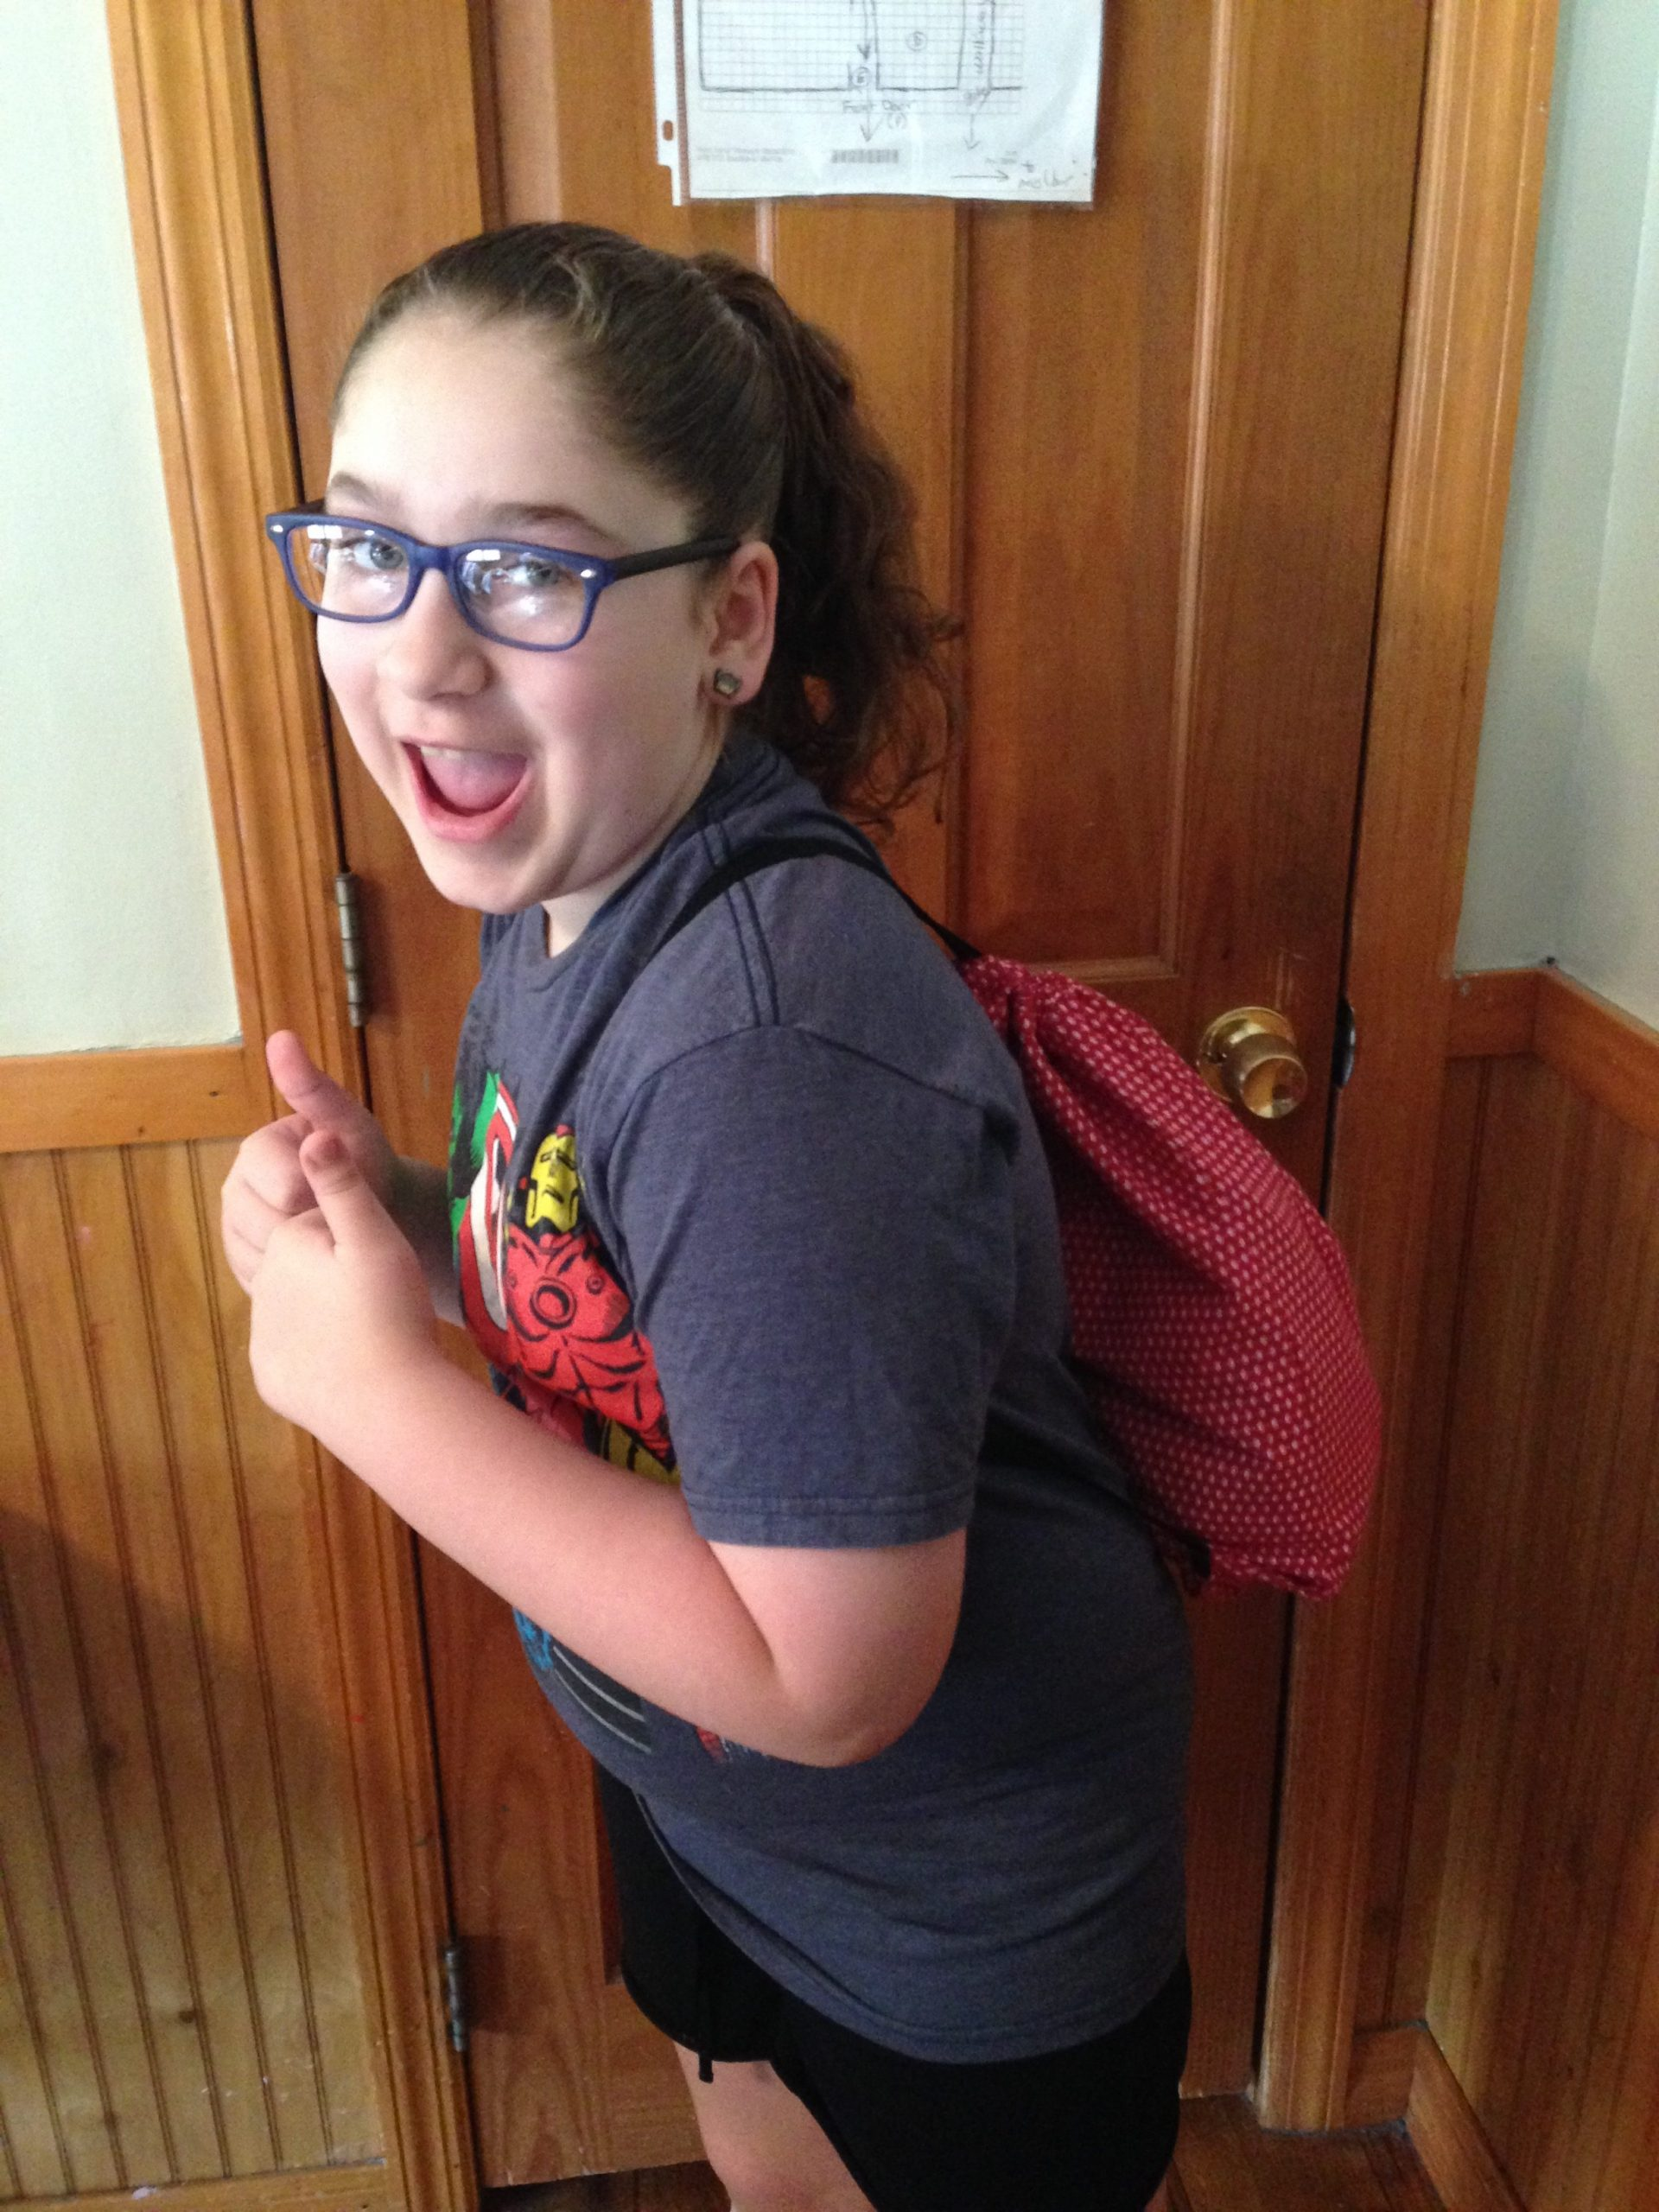 Mini Monday – Post 16 – I'm Learning to Sew!